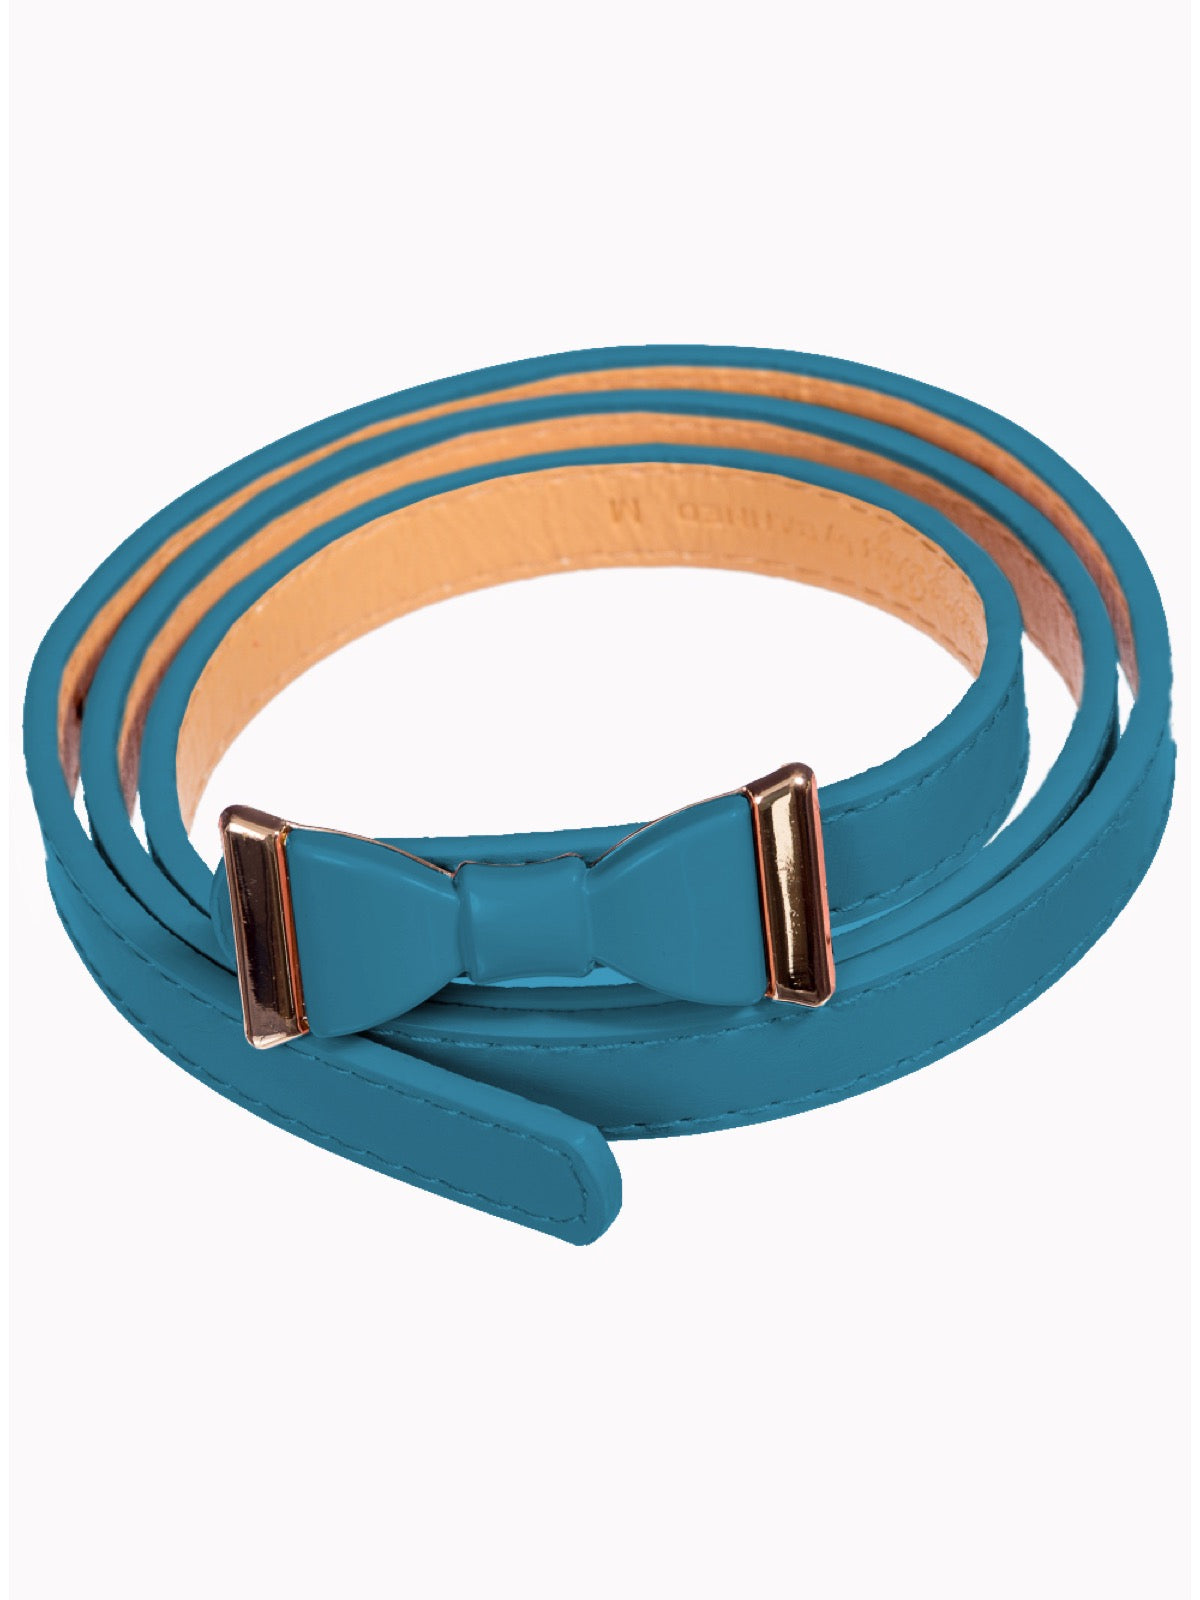 Summer Love Belt - Turquoise